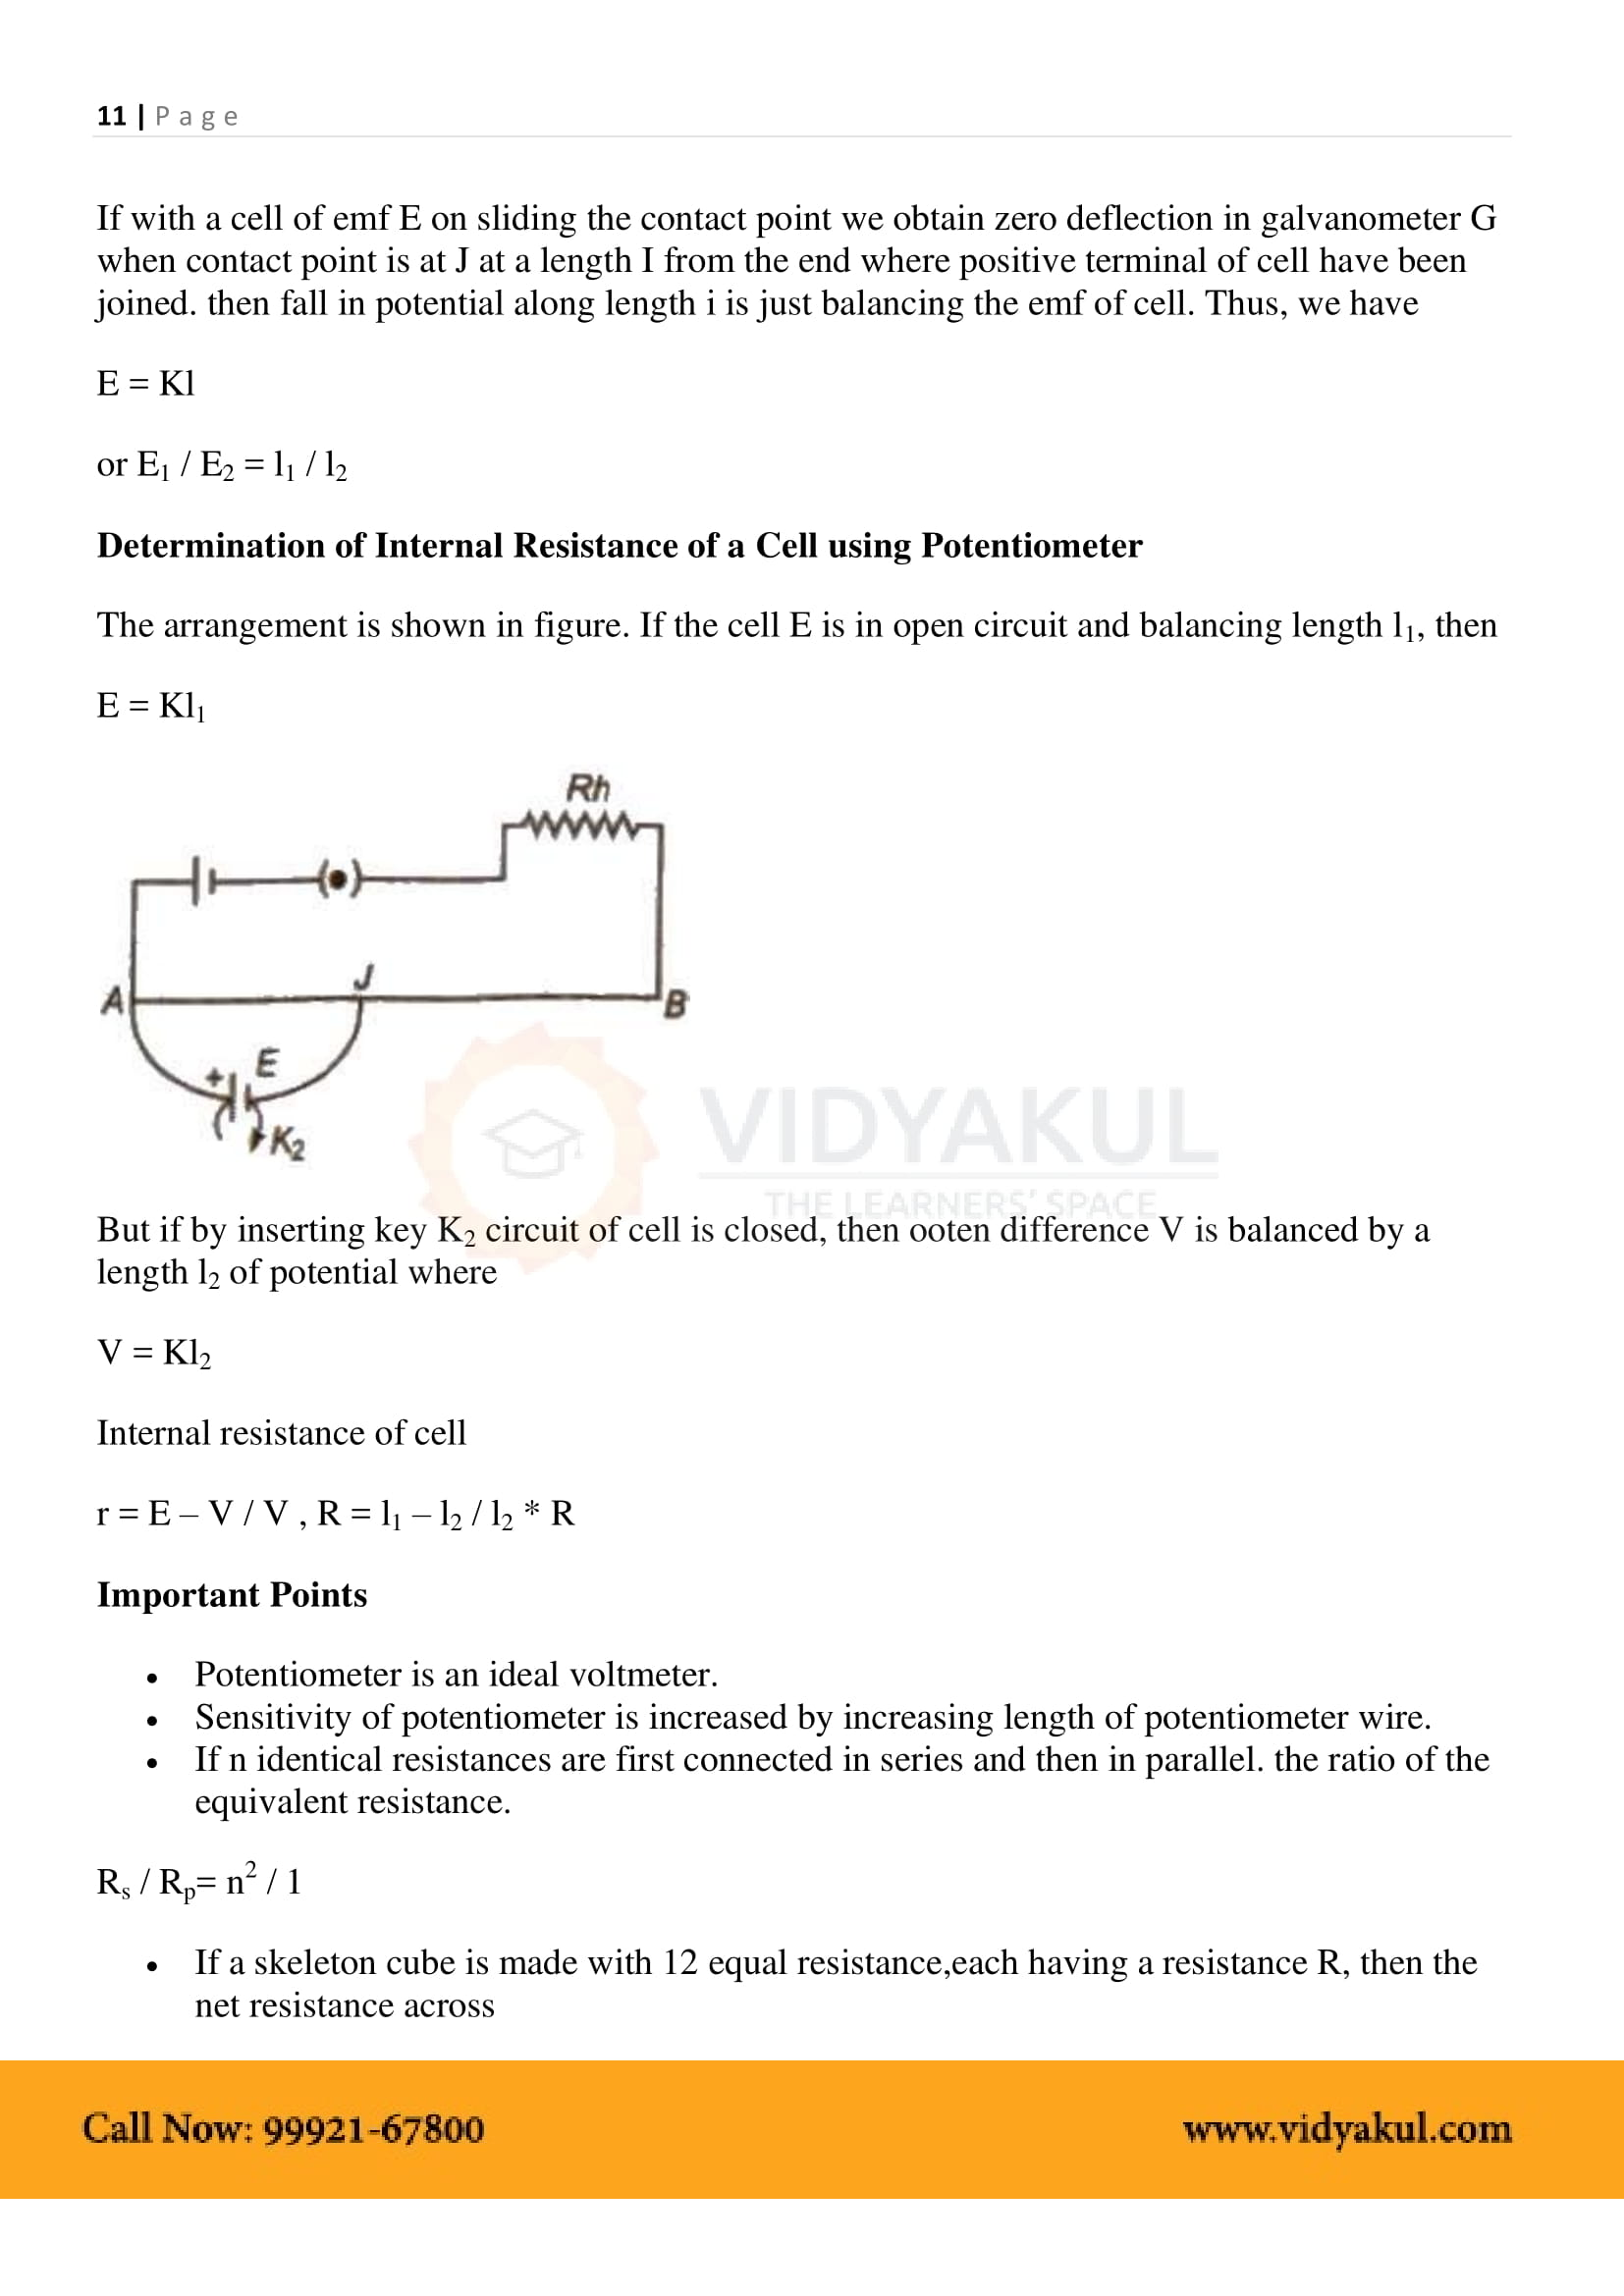 Current Electricity Class 12 Notes Vidyakul Related Image With Physics Part